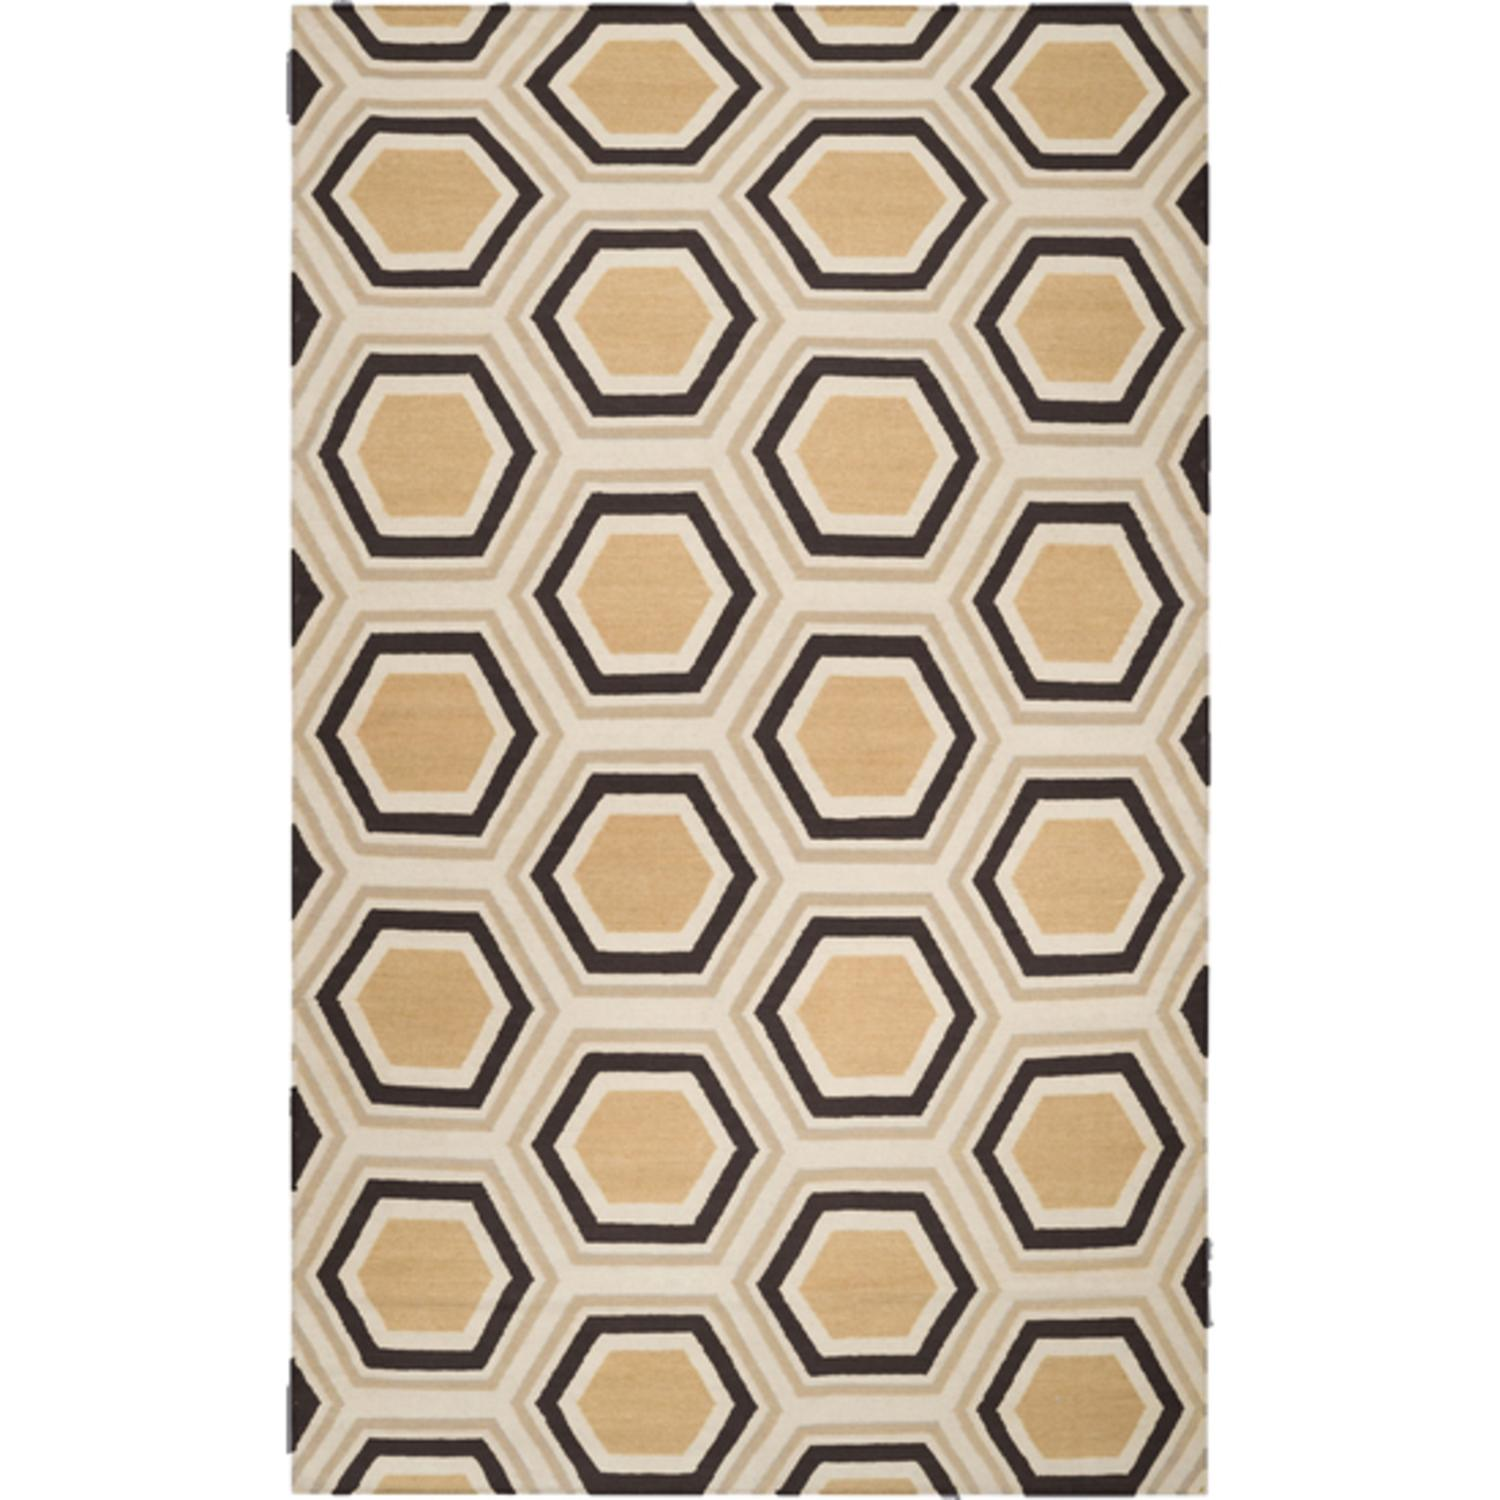 3.5' x 5.5' Retro Octagon Goldenrod and Coffee Brown Wool Area Throw Rug